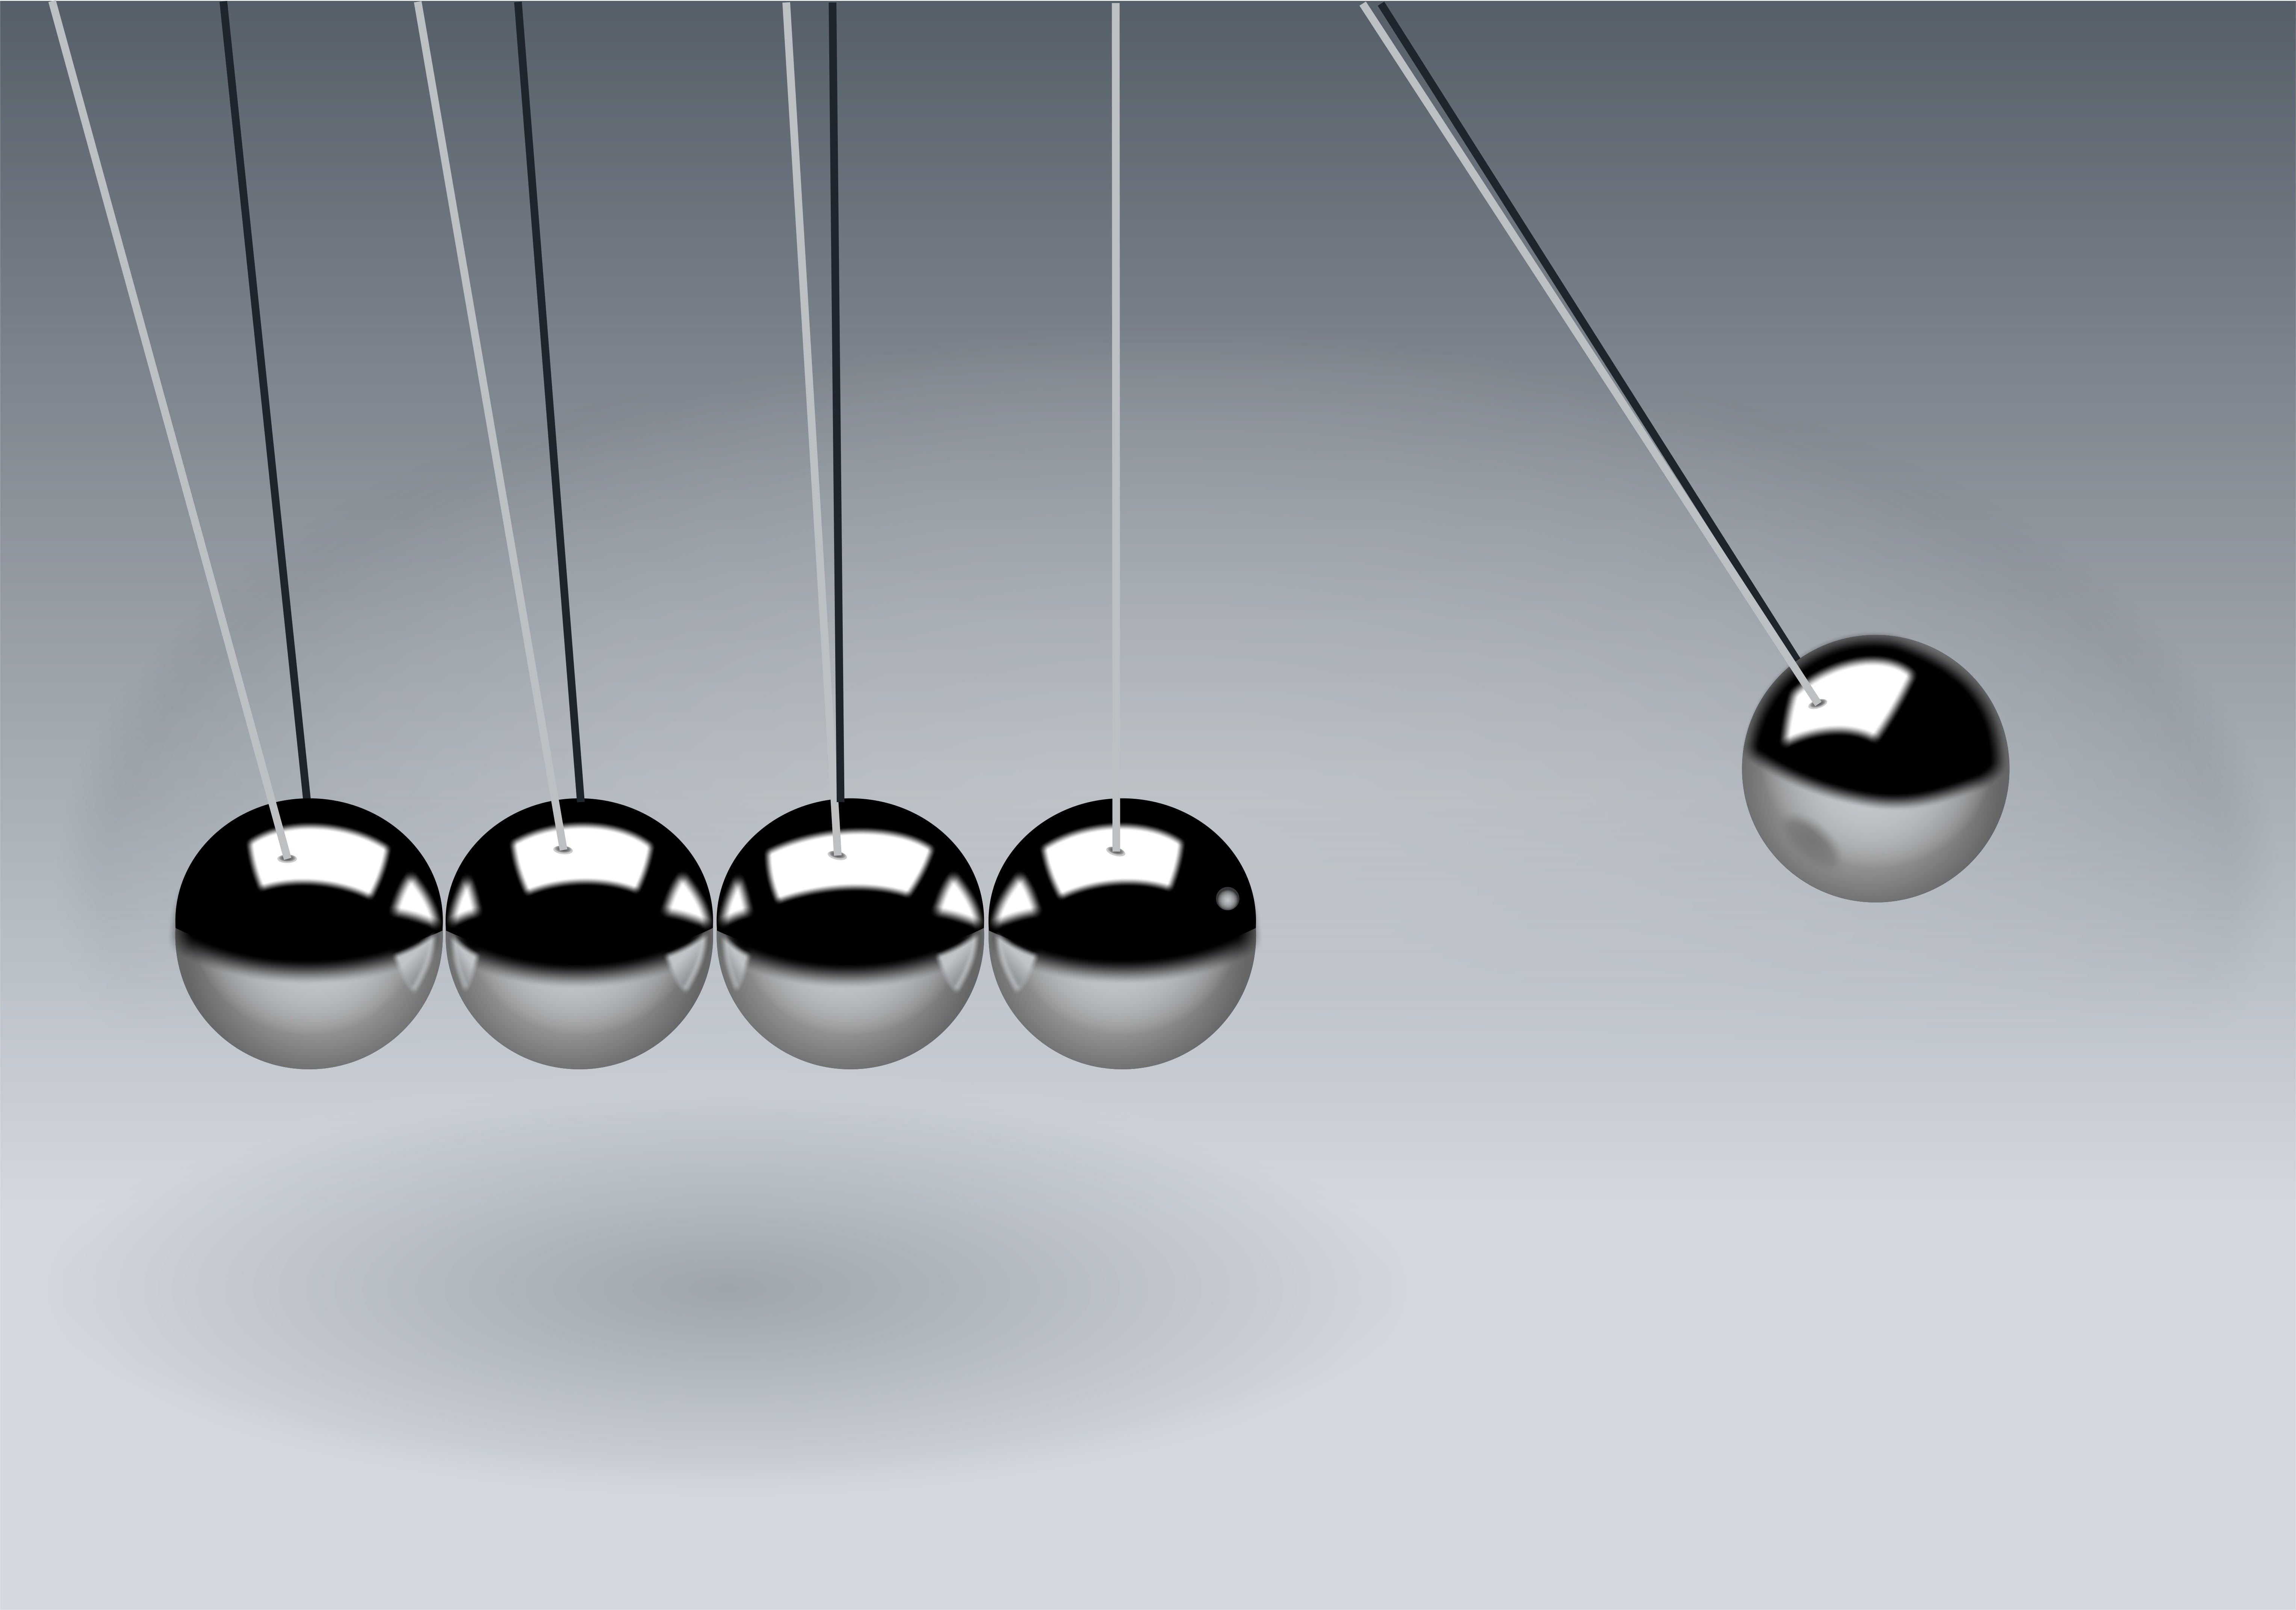 Gray Newton's Cradle in Close-up Photogaphy